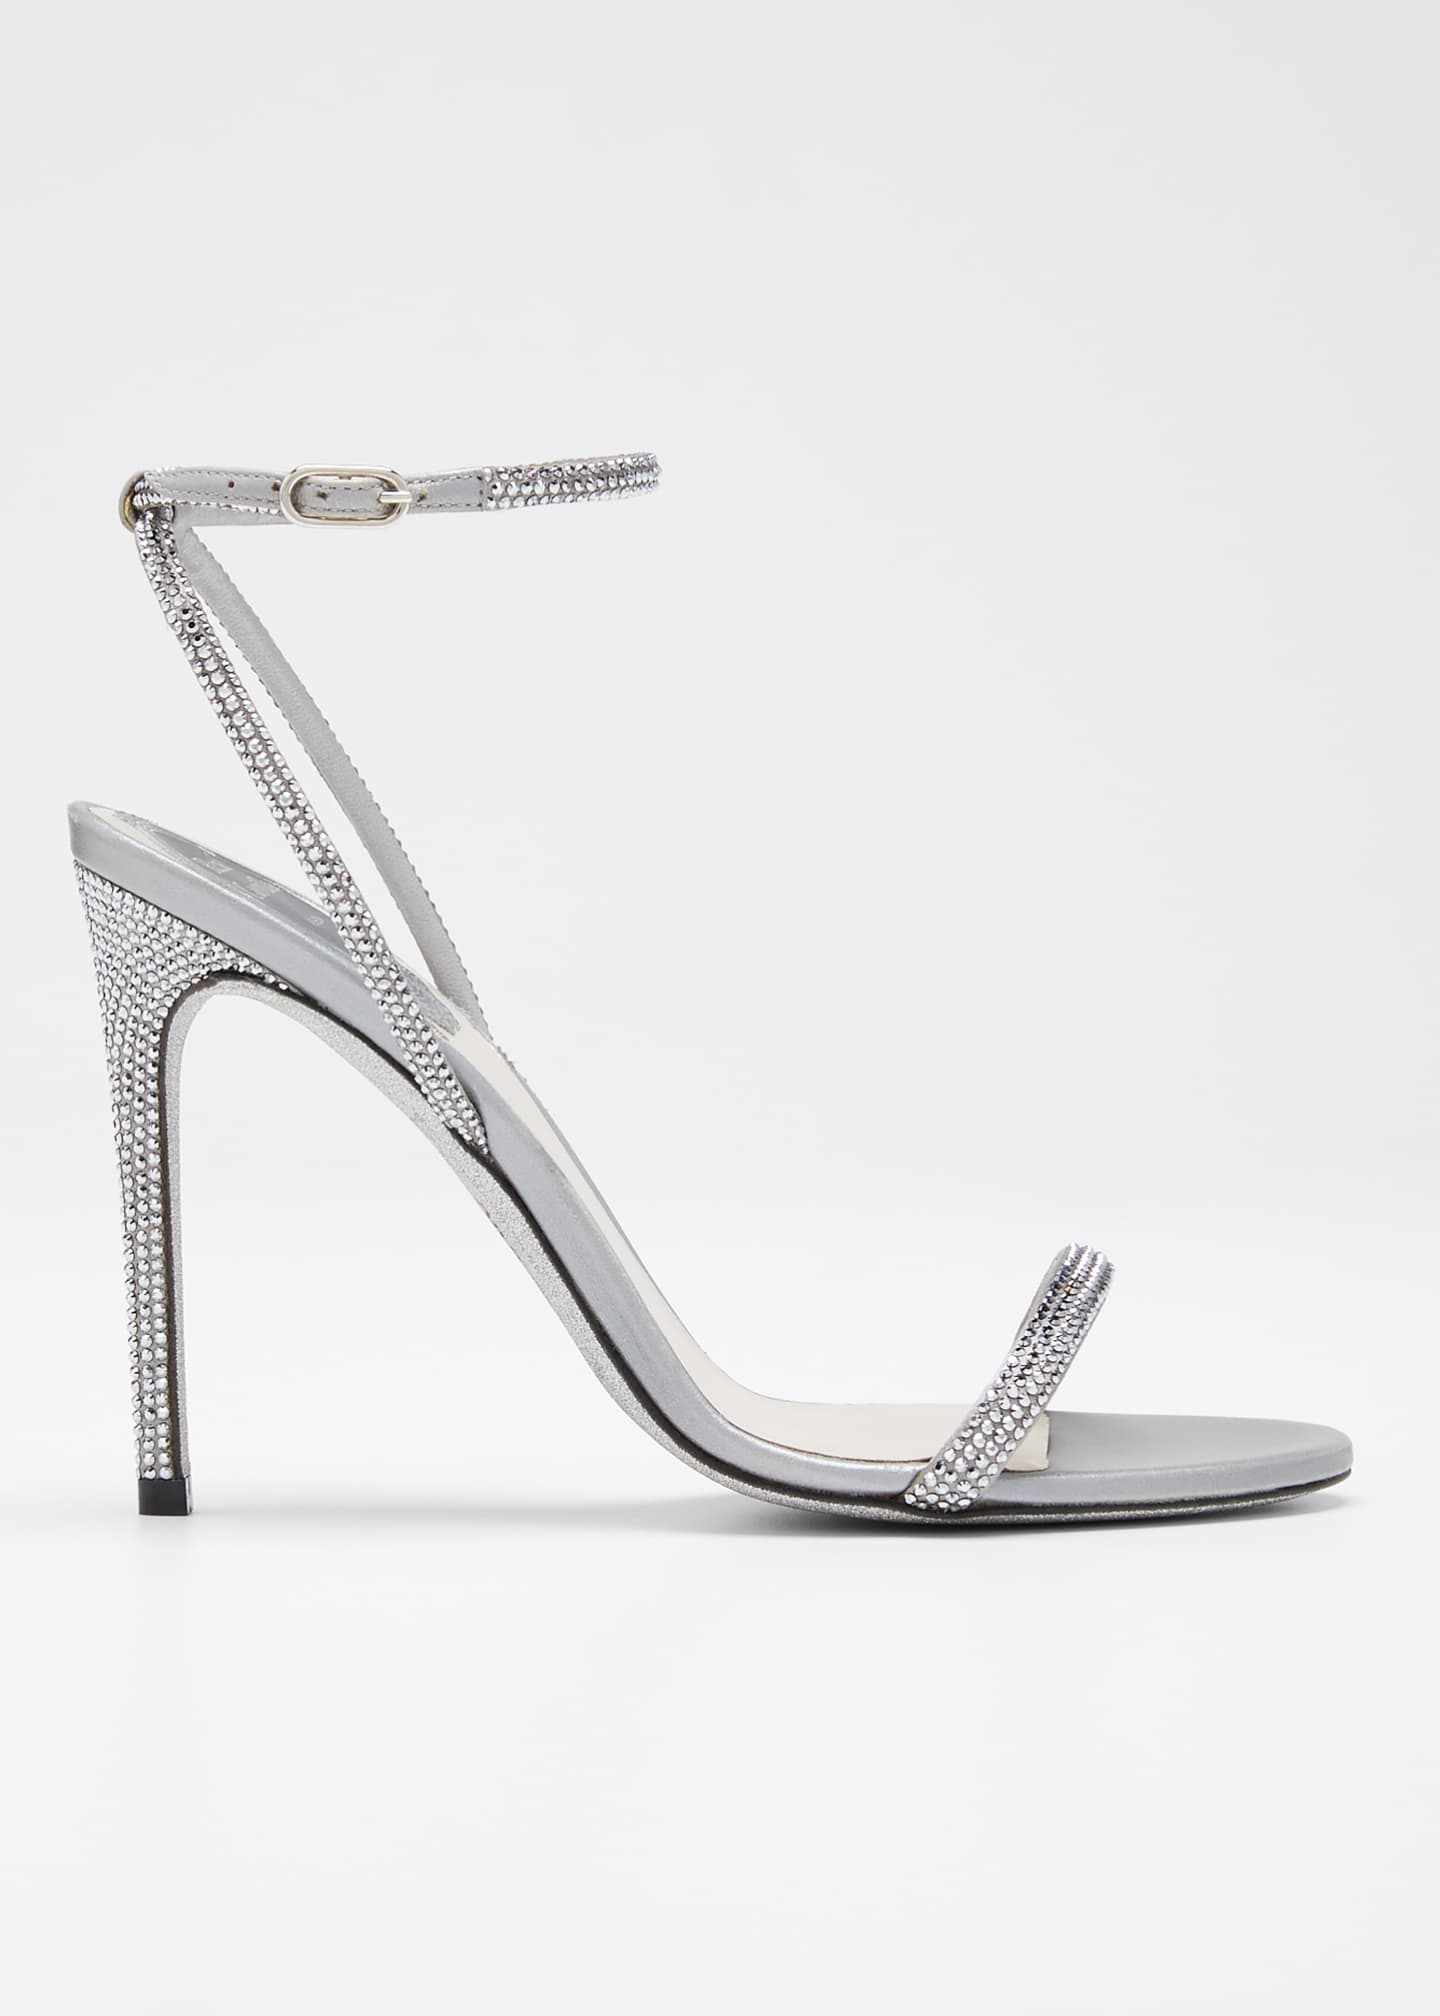 Rene Caovilla Crystal Cocktail Ankle-Strap Sandals